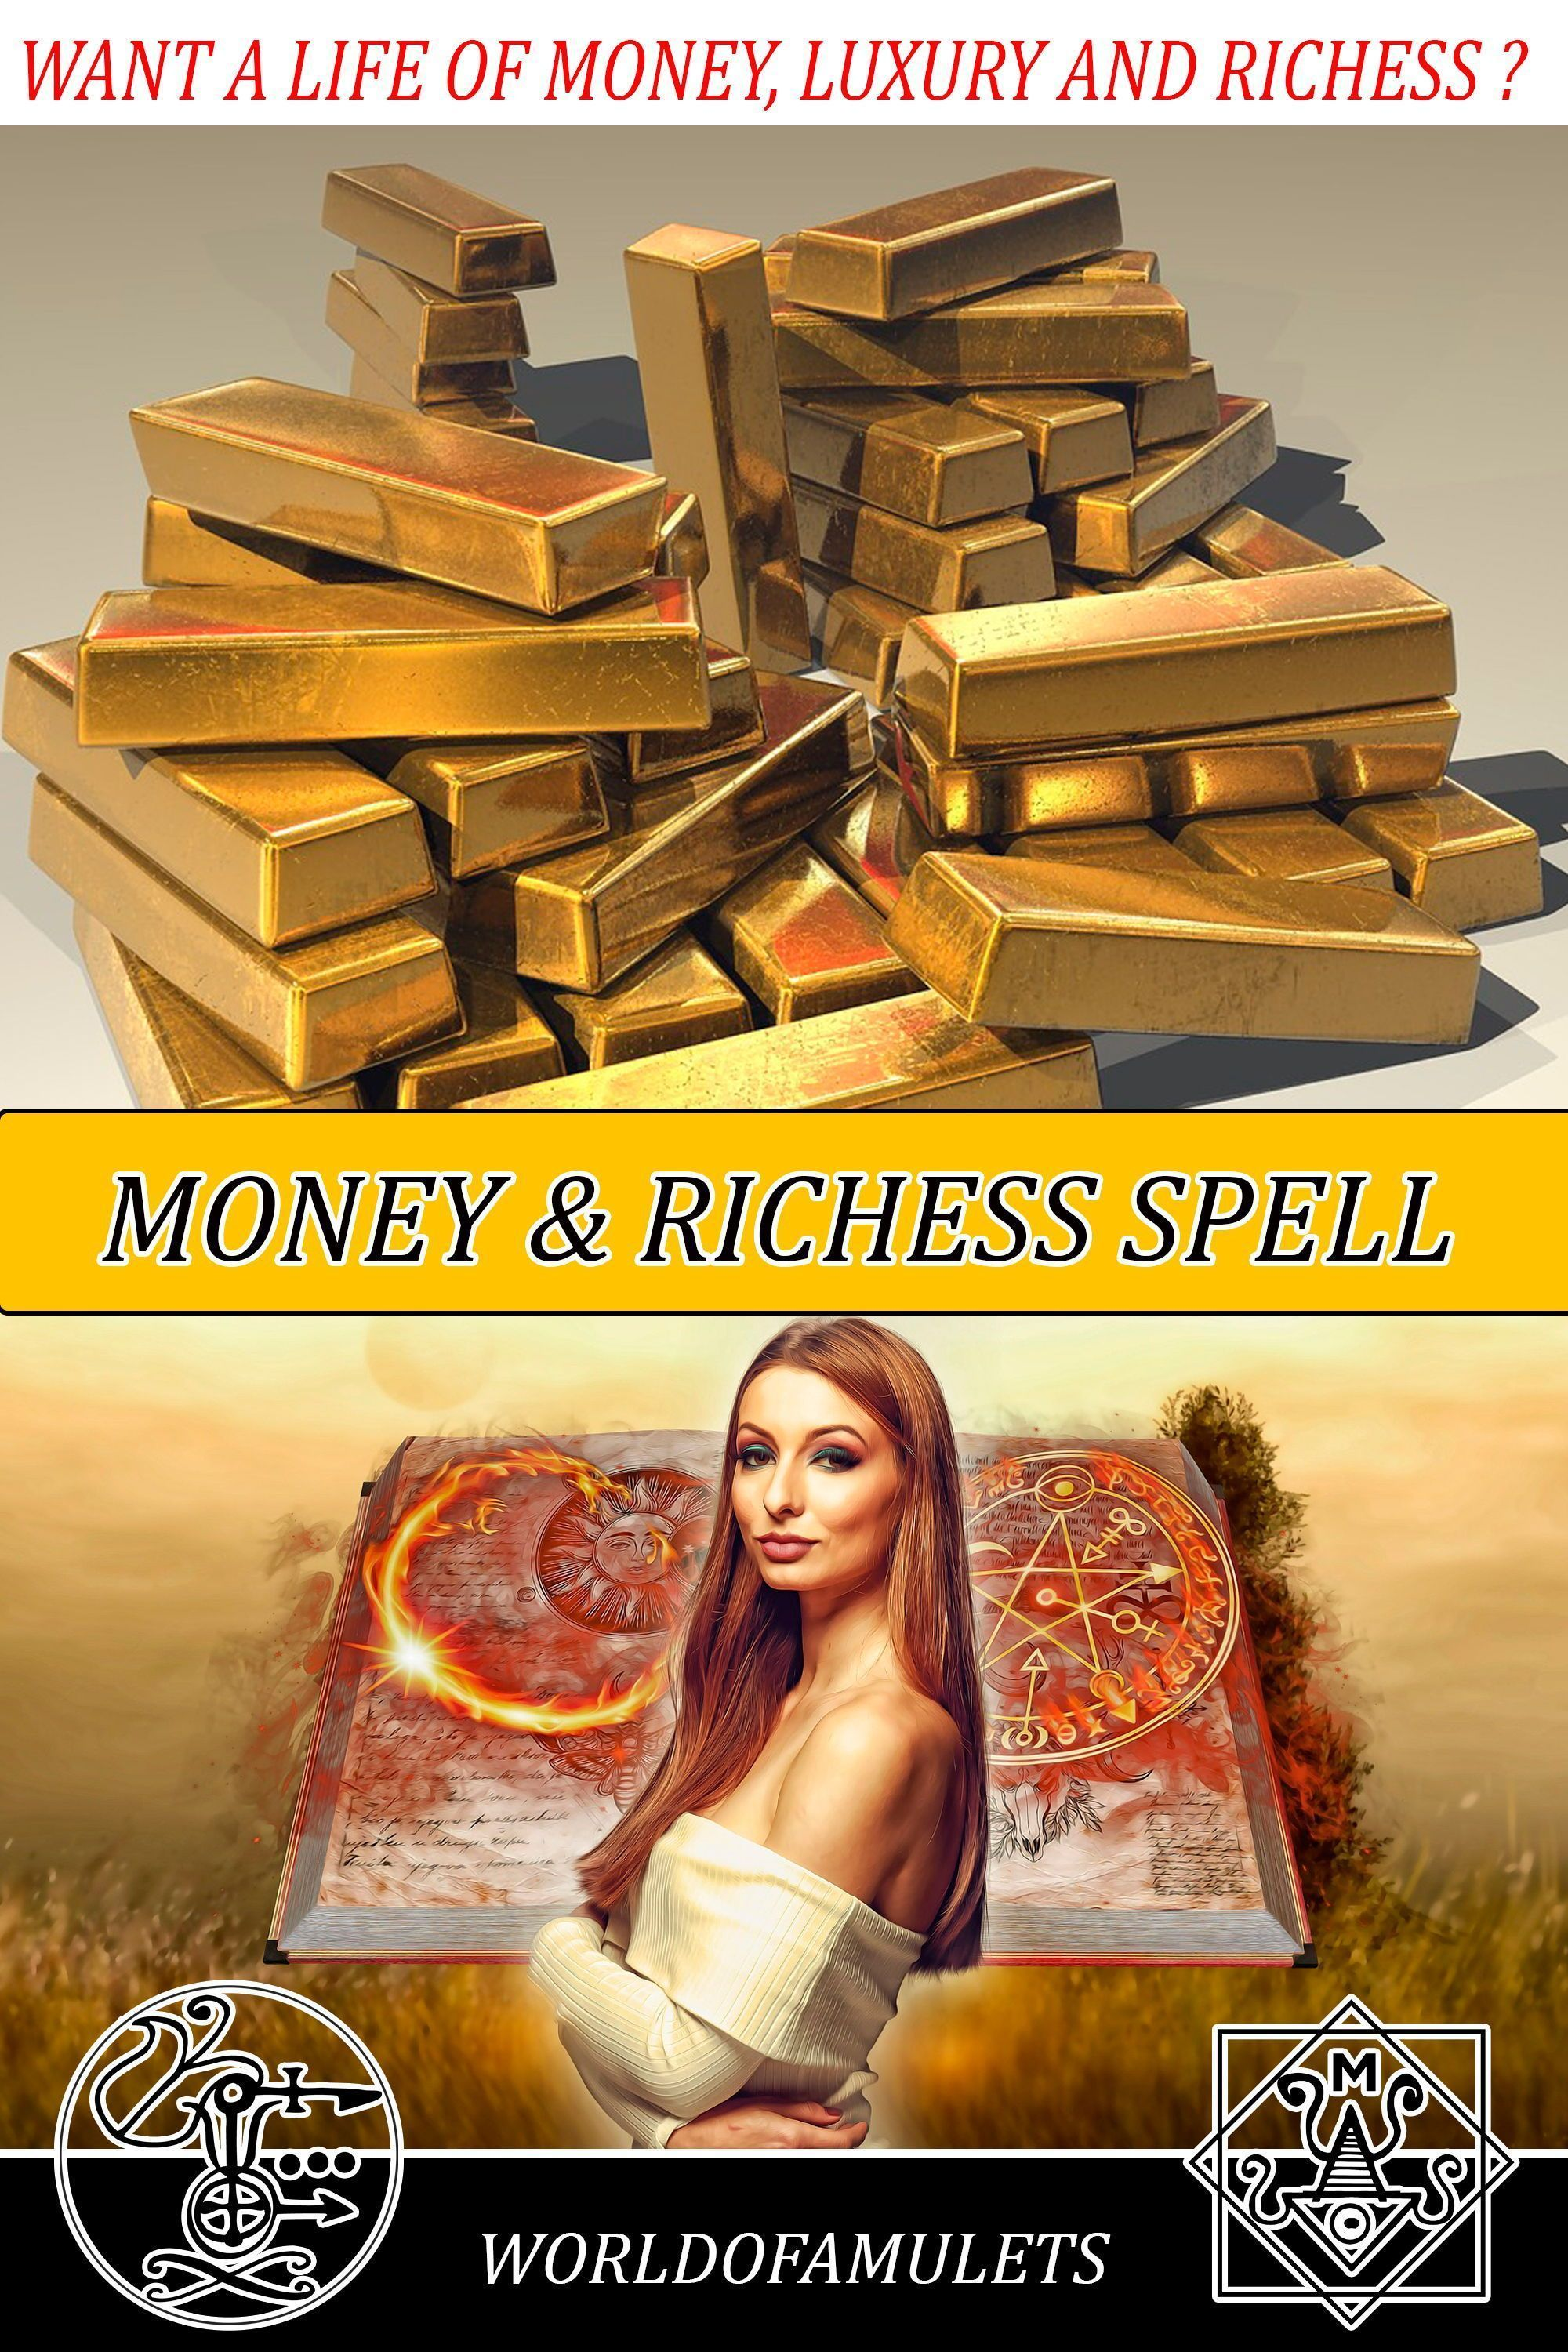 Witchcraft Wealth and Money Spell with Baal School of witchcraft and Wizardry School Beginner Witchcraft Spells #moneyspells Want a life of richess, money, wealth, expensive jewelry, luxury cars and homes and dream vacations?  Our Money Spell can make this true. Check the reviews  #money #spell #wealth #richess #moneyspell Witchcraft Wealth and Money Spell with Baal School of witchcraft and Wizardry School Beginner Witchcraft Spells #moneyspells Want a life of richess, money, wealth, expensive j #moneyspell